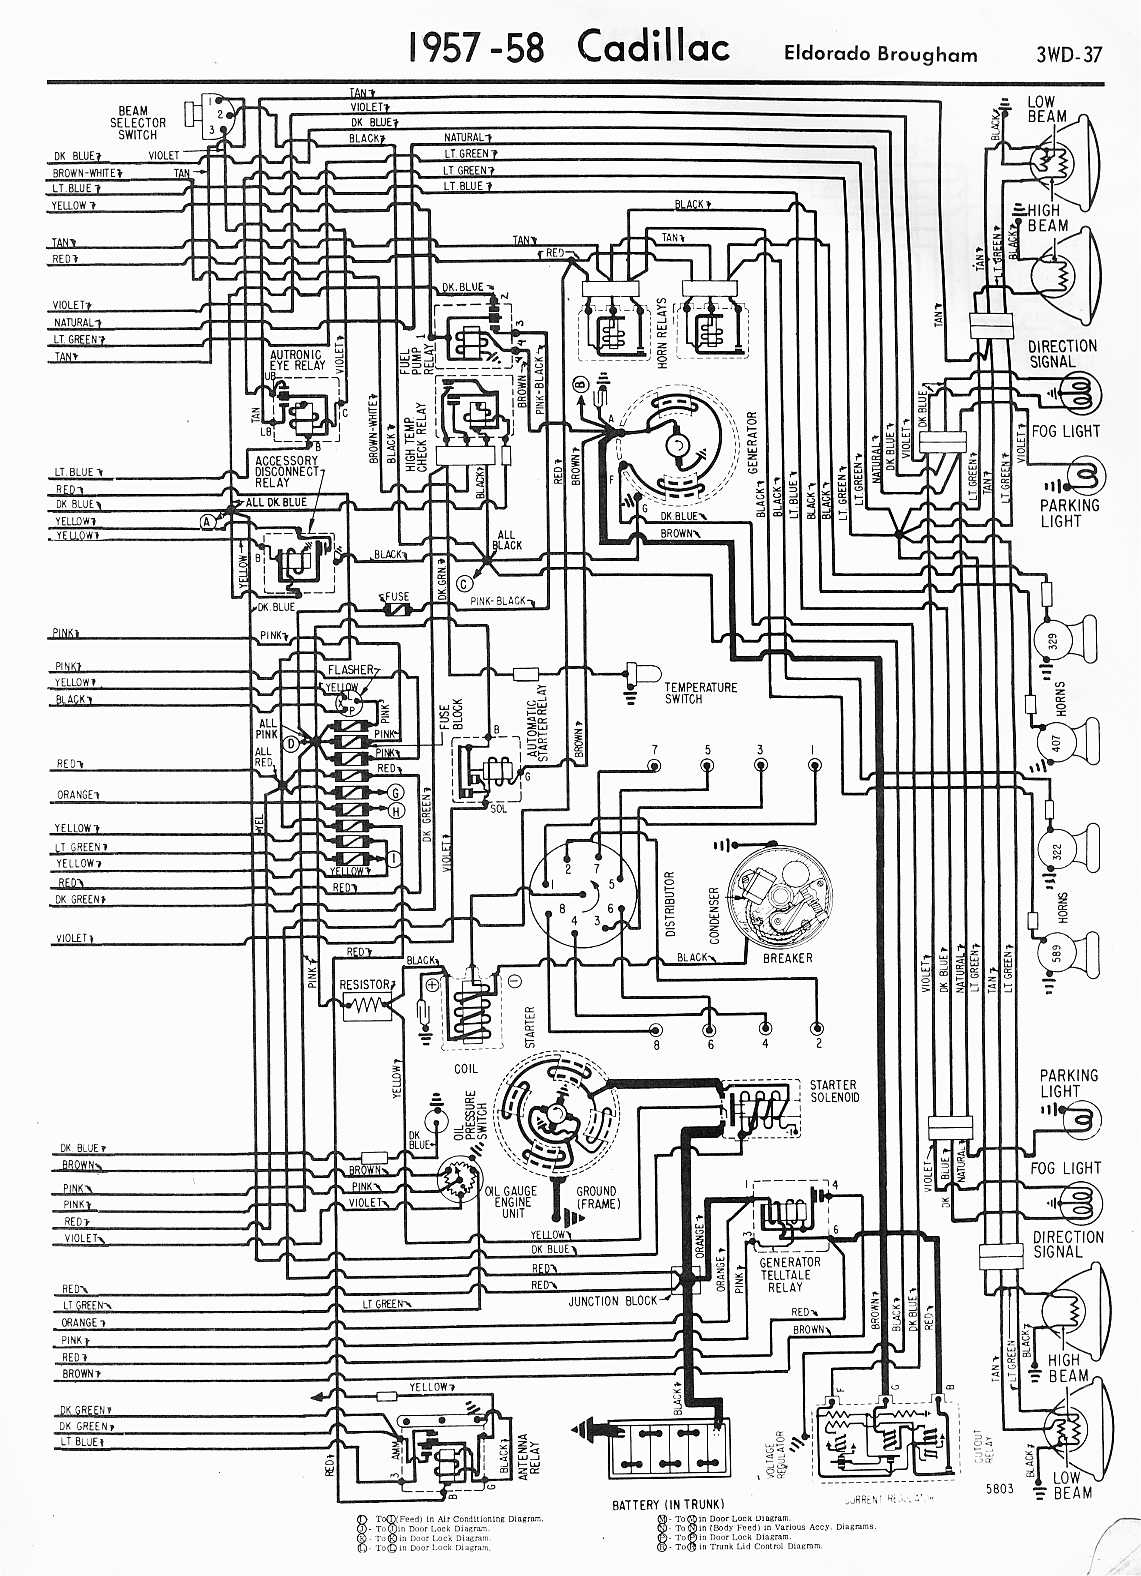 1995 cadillac wiring diagrams diagram base website wiring diagrams -  sequencediagram.inadda.it  diagram base website full edition - inadda